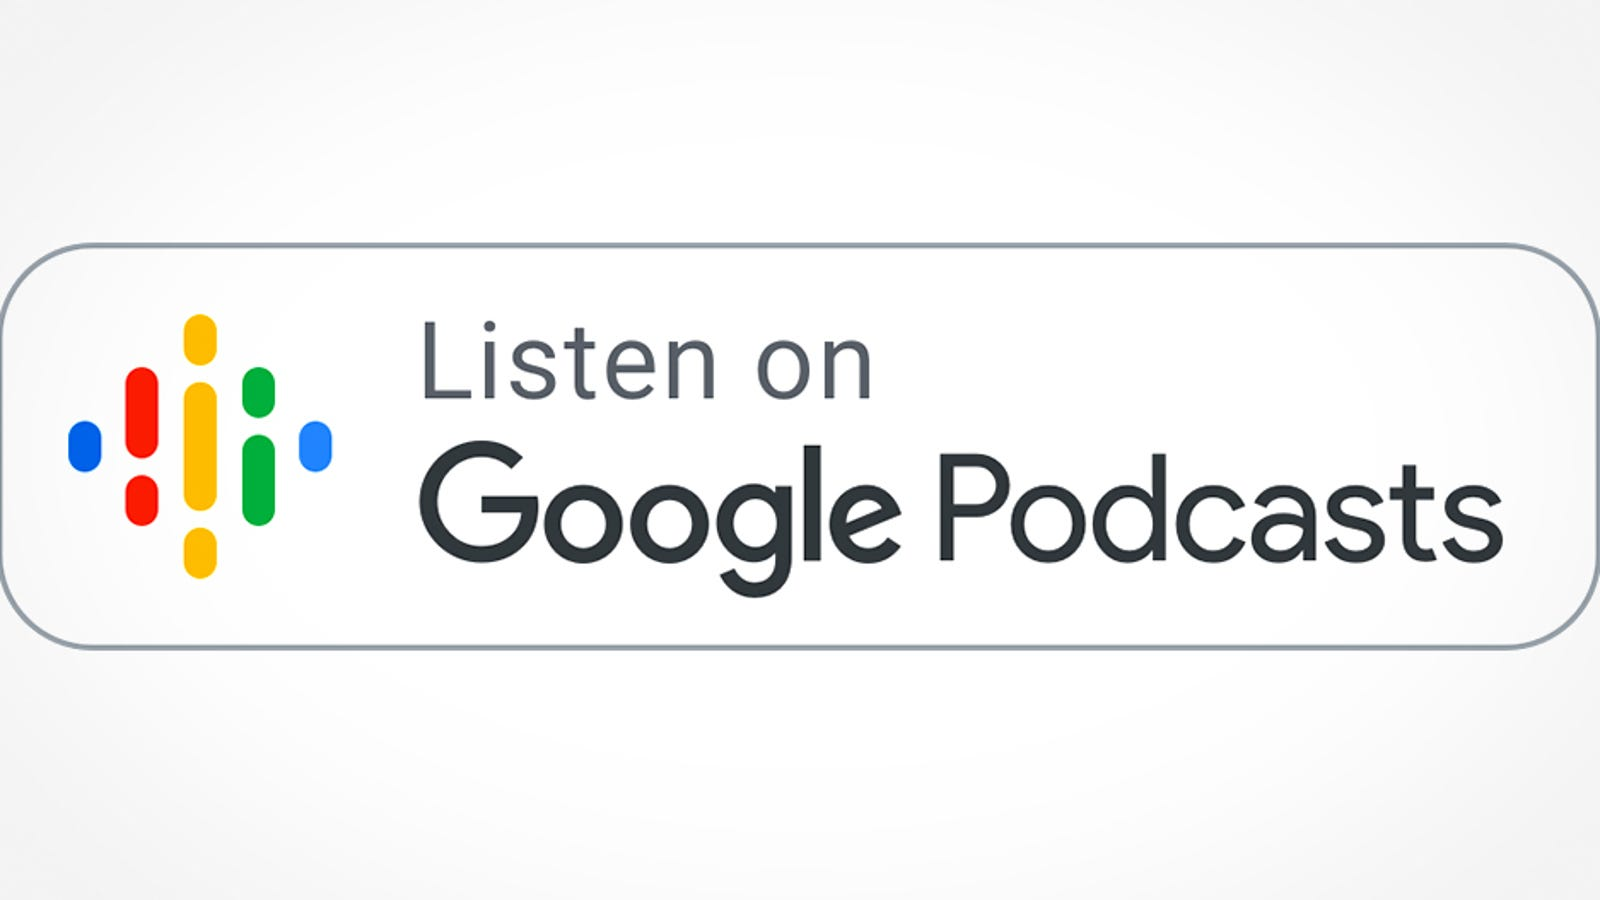 QnA VBage How to Enable Web Playback and Find Auto-Transcriptions in Google Podcasts